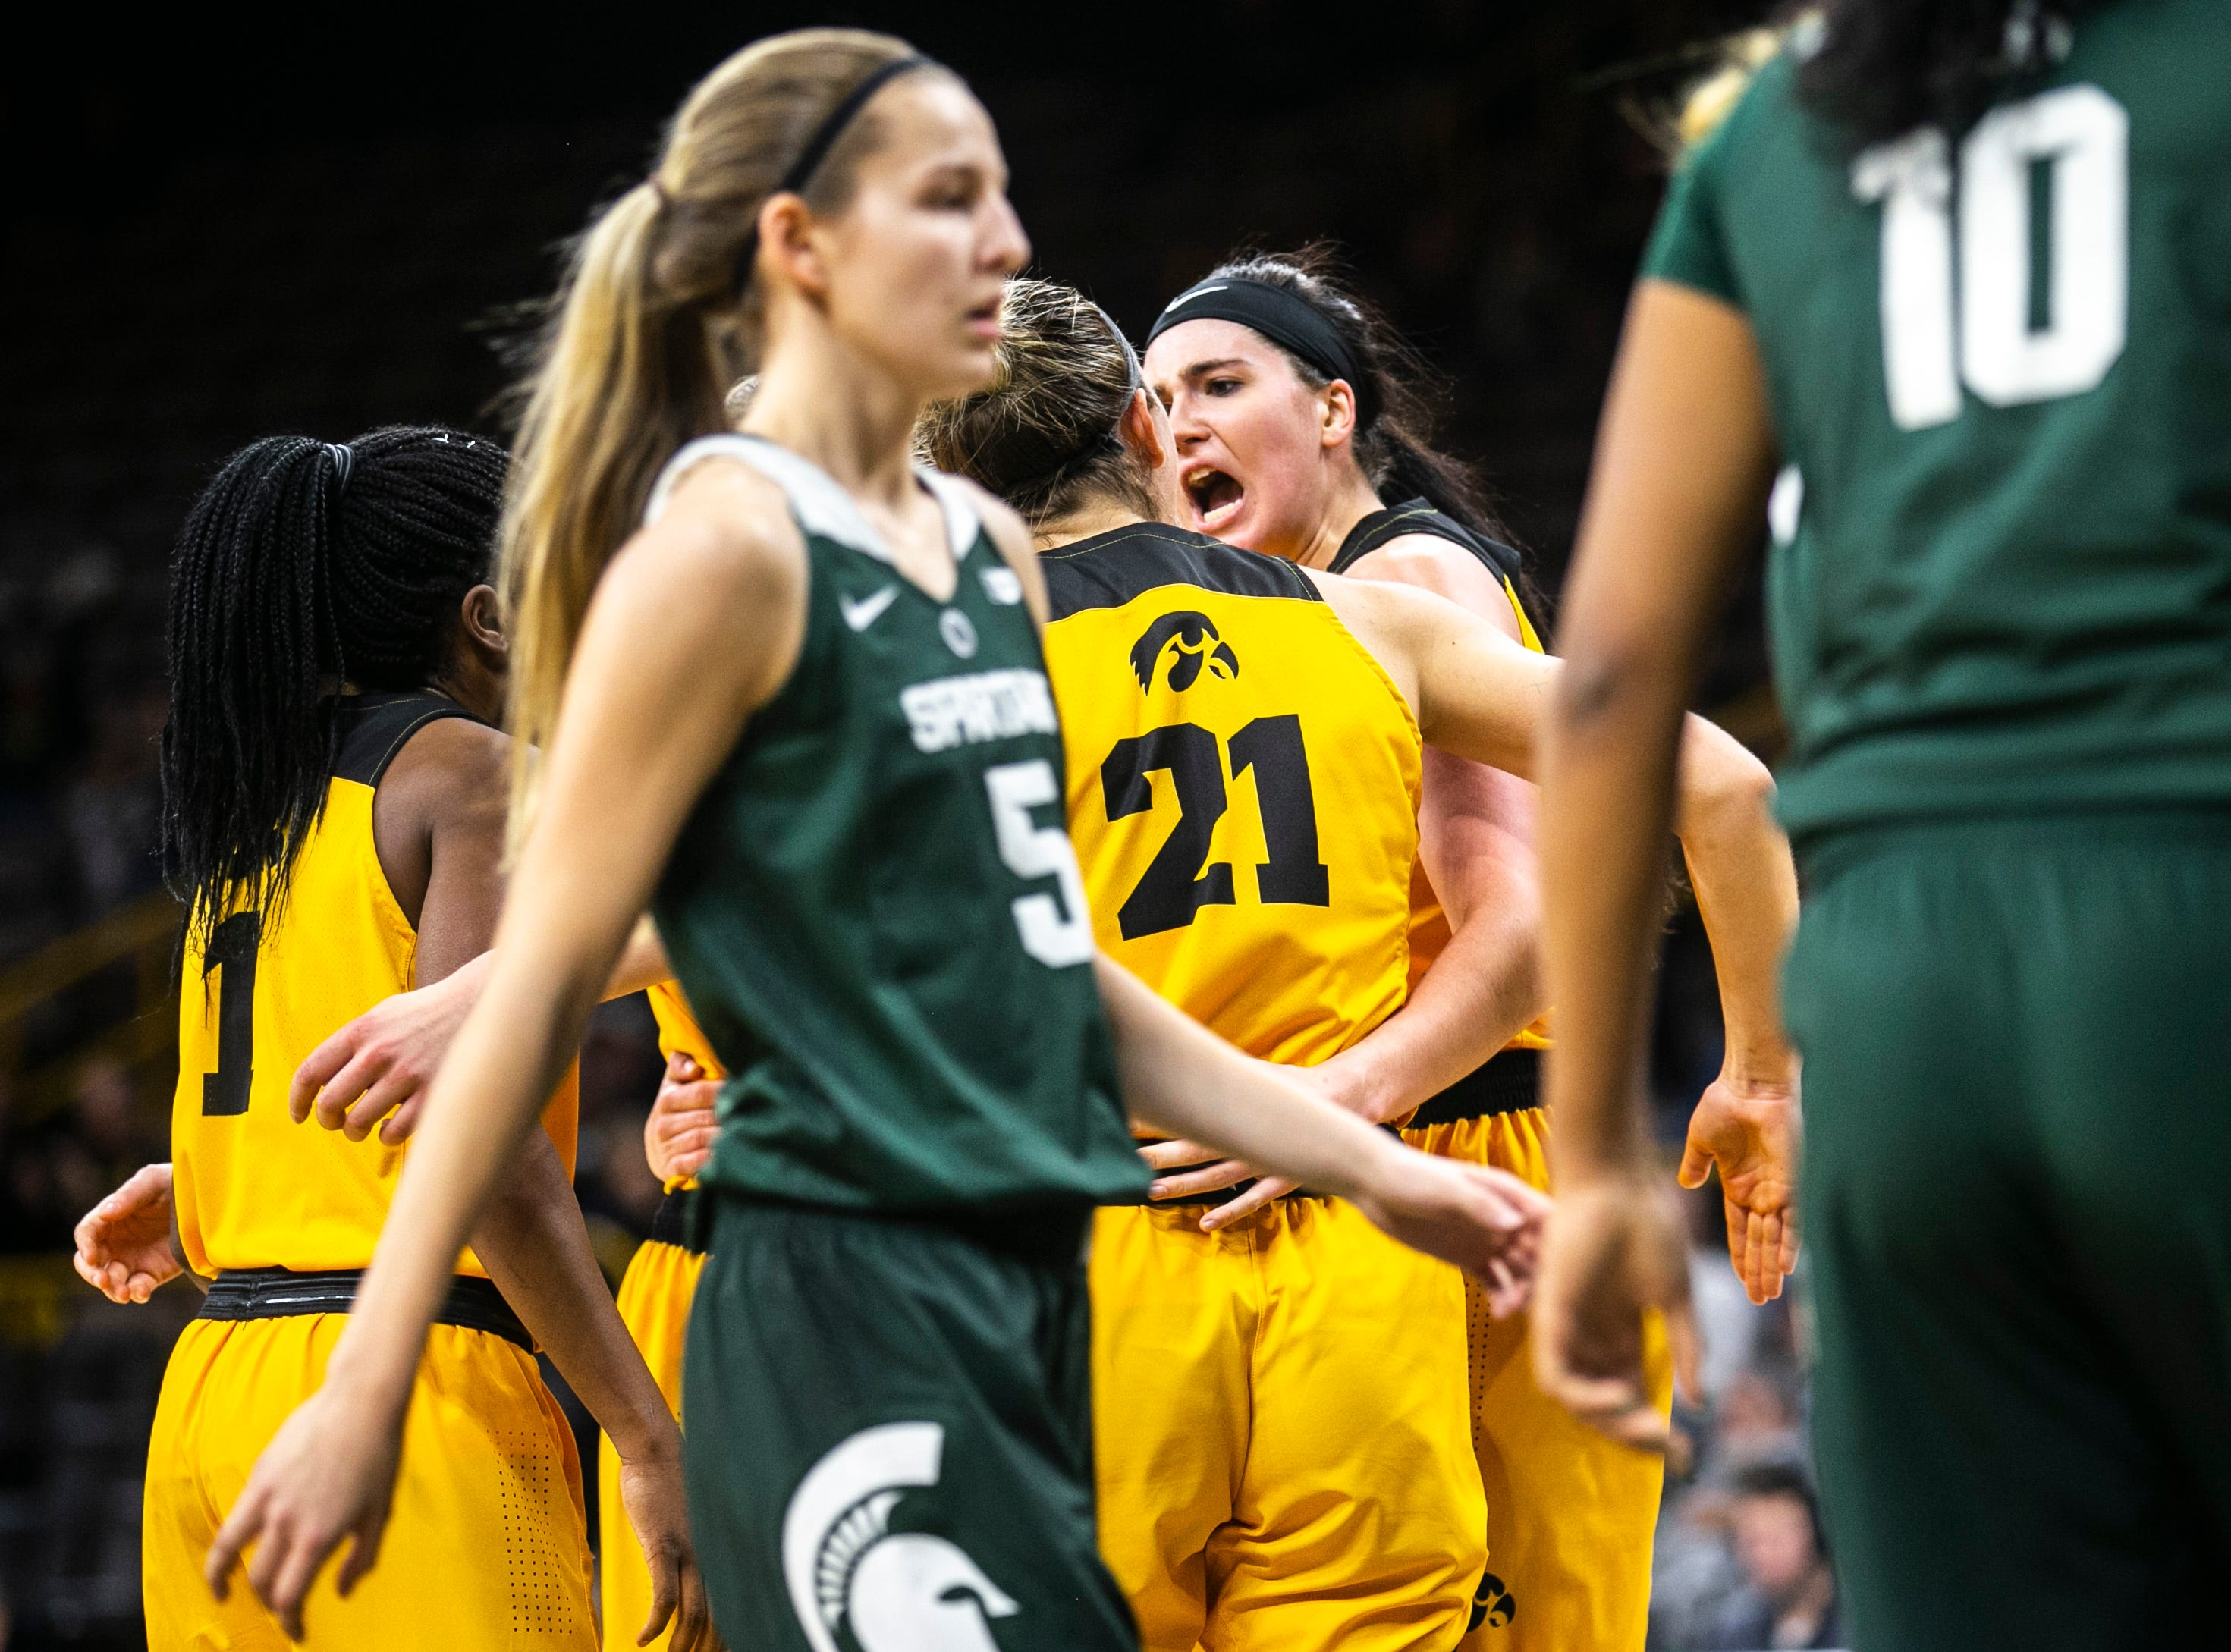 Iowa center Megan Gustafson celebrates with teammates after drawing a foul during a NCAA Big Ten Conference women's basketball game on Thursday, Feb. 7, 2019 at Carver-Hawkeye Arena in Iowa City, Iowa.